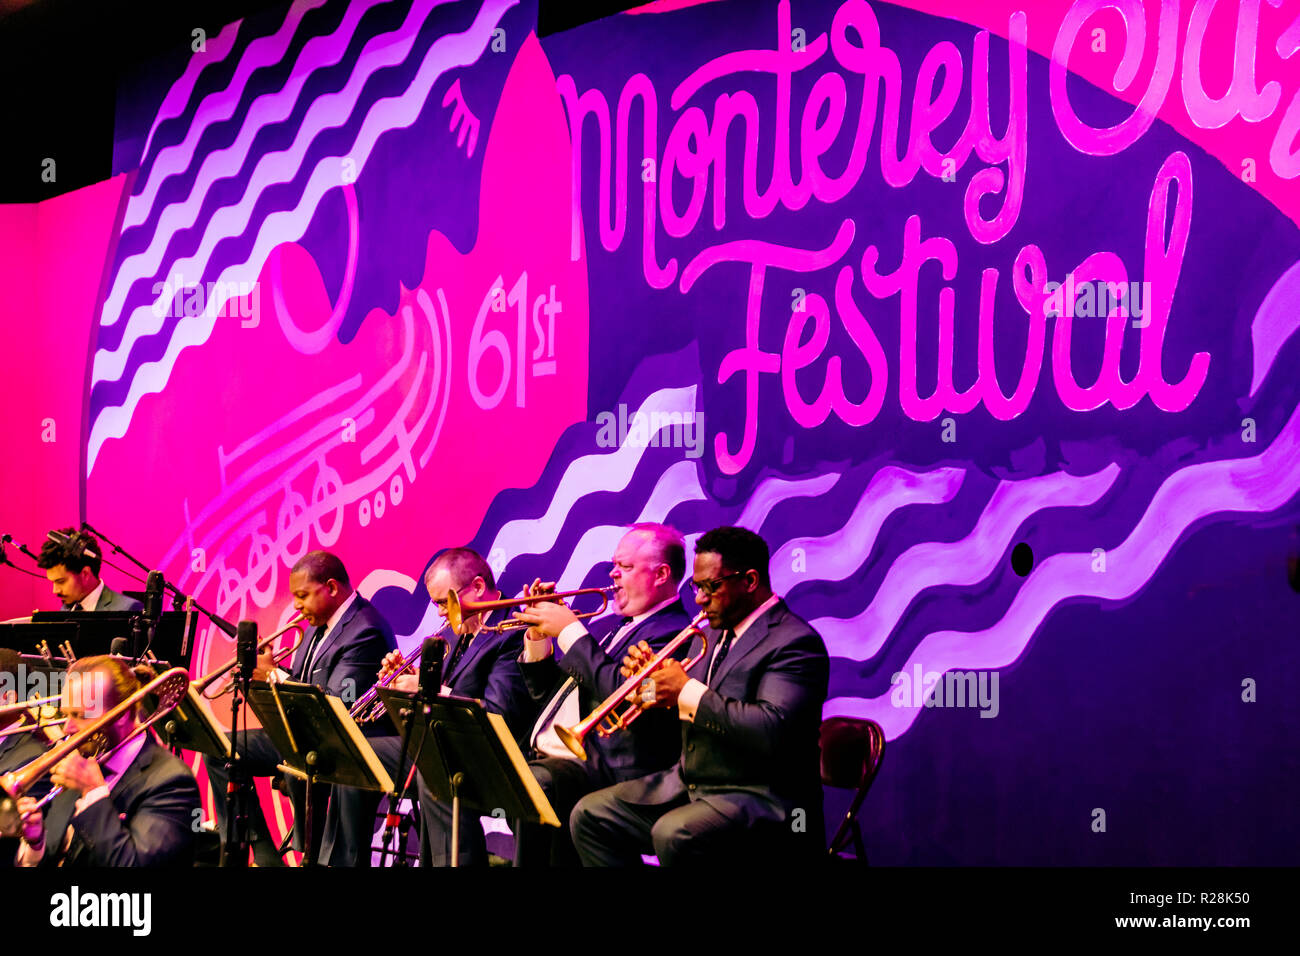 JAZZ AT LINCOLN CENTER ORCHESTRA with WYNTON MARSALIS at the 61st MONTEREY JAZZ FESTIVAL - MONTEREY, CALIFORNIA - Stock Image